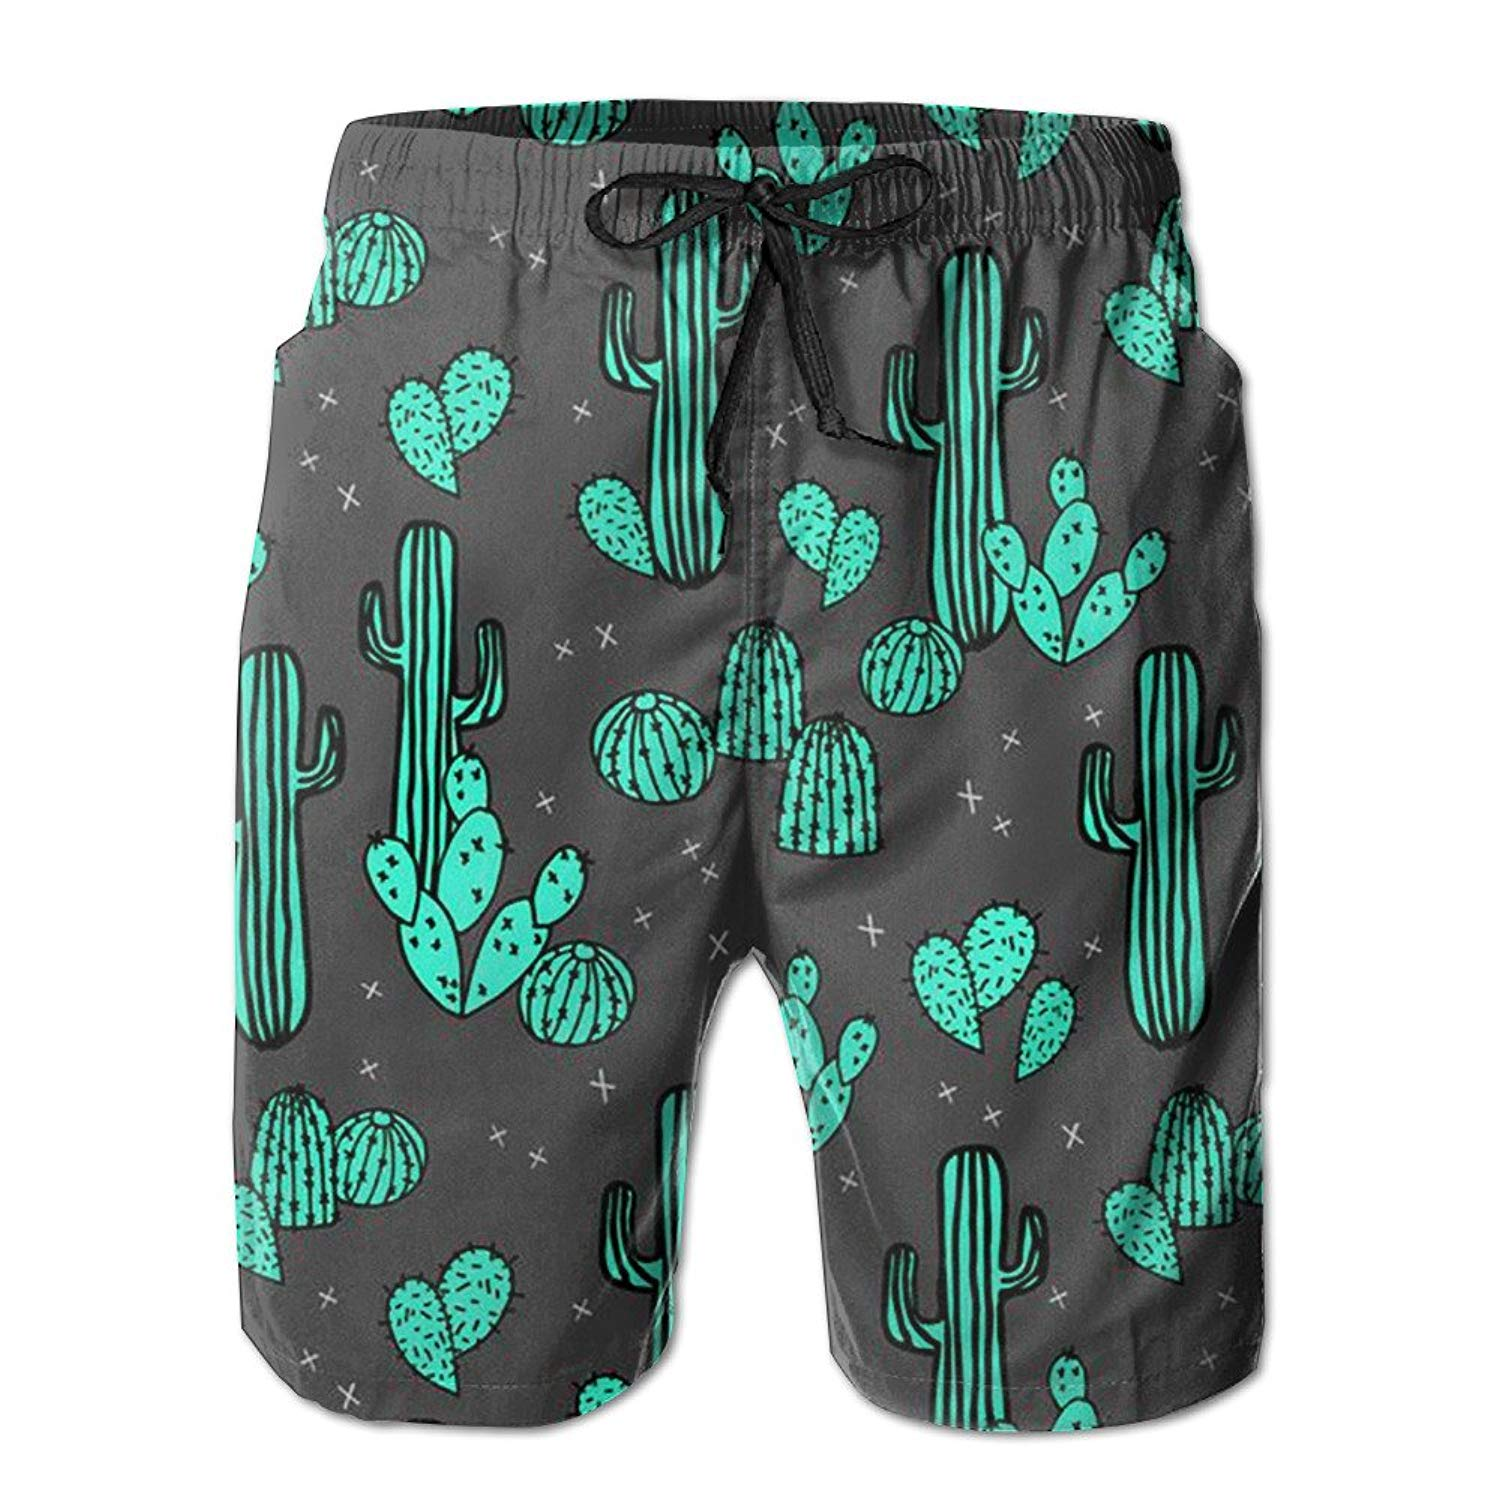 caf2428d4a Get Quotations · Green Cactus Men's Shorts Swim Trunks Lightweight Quick  Dry Beach Shorts